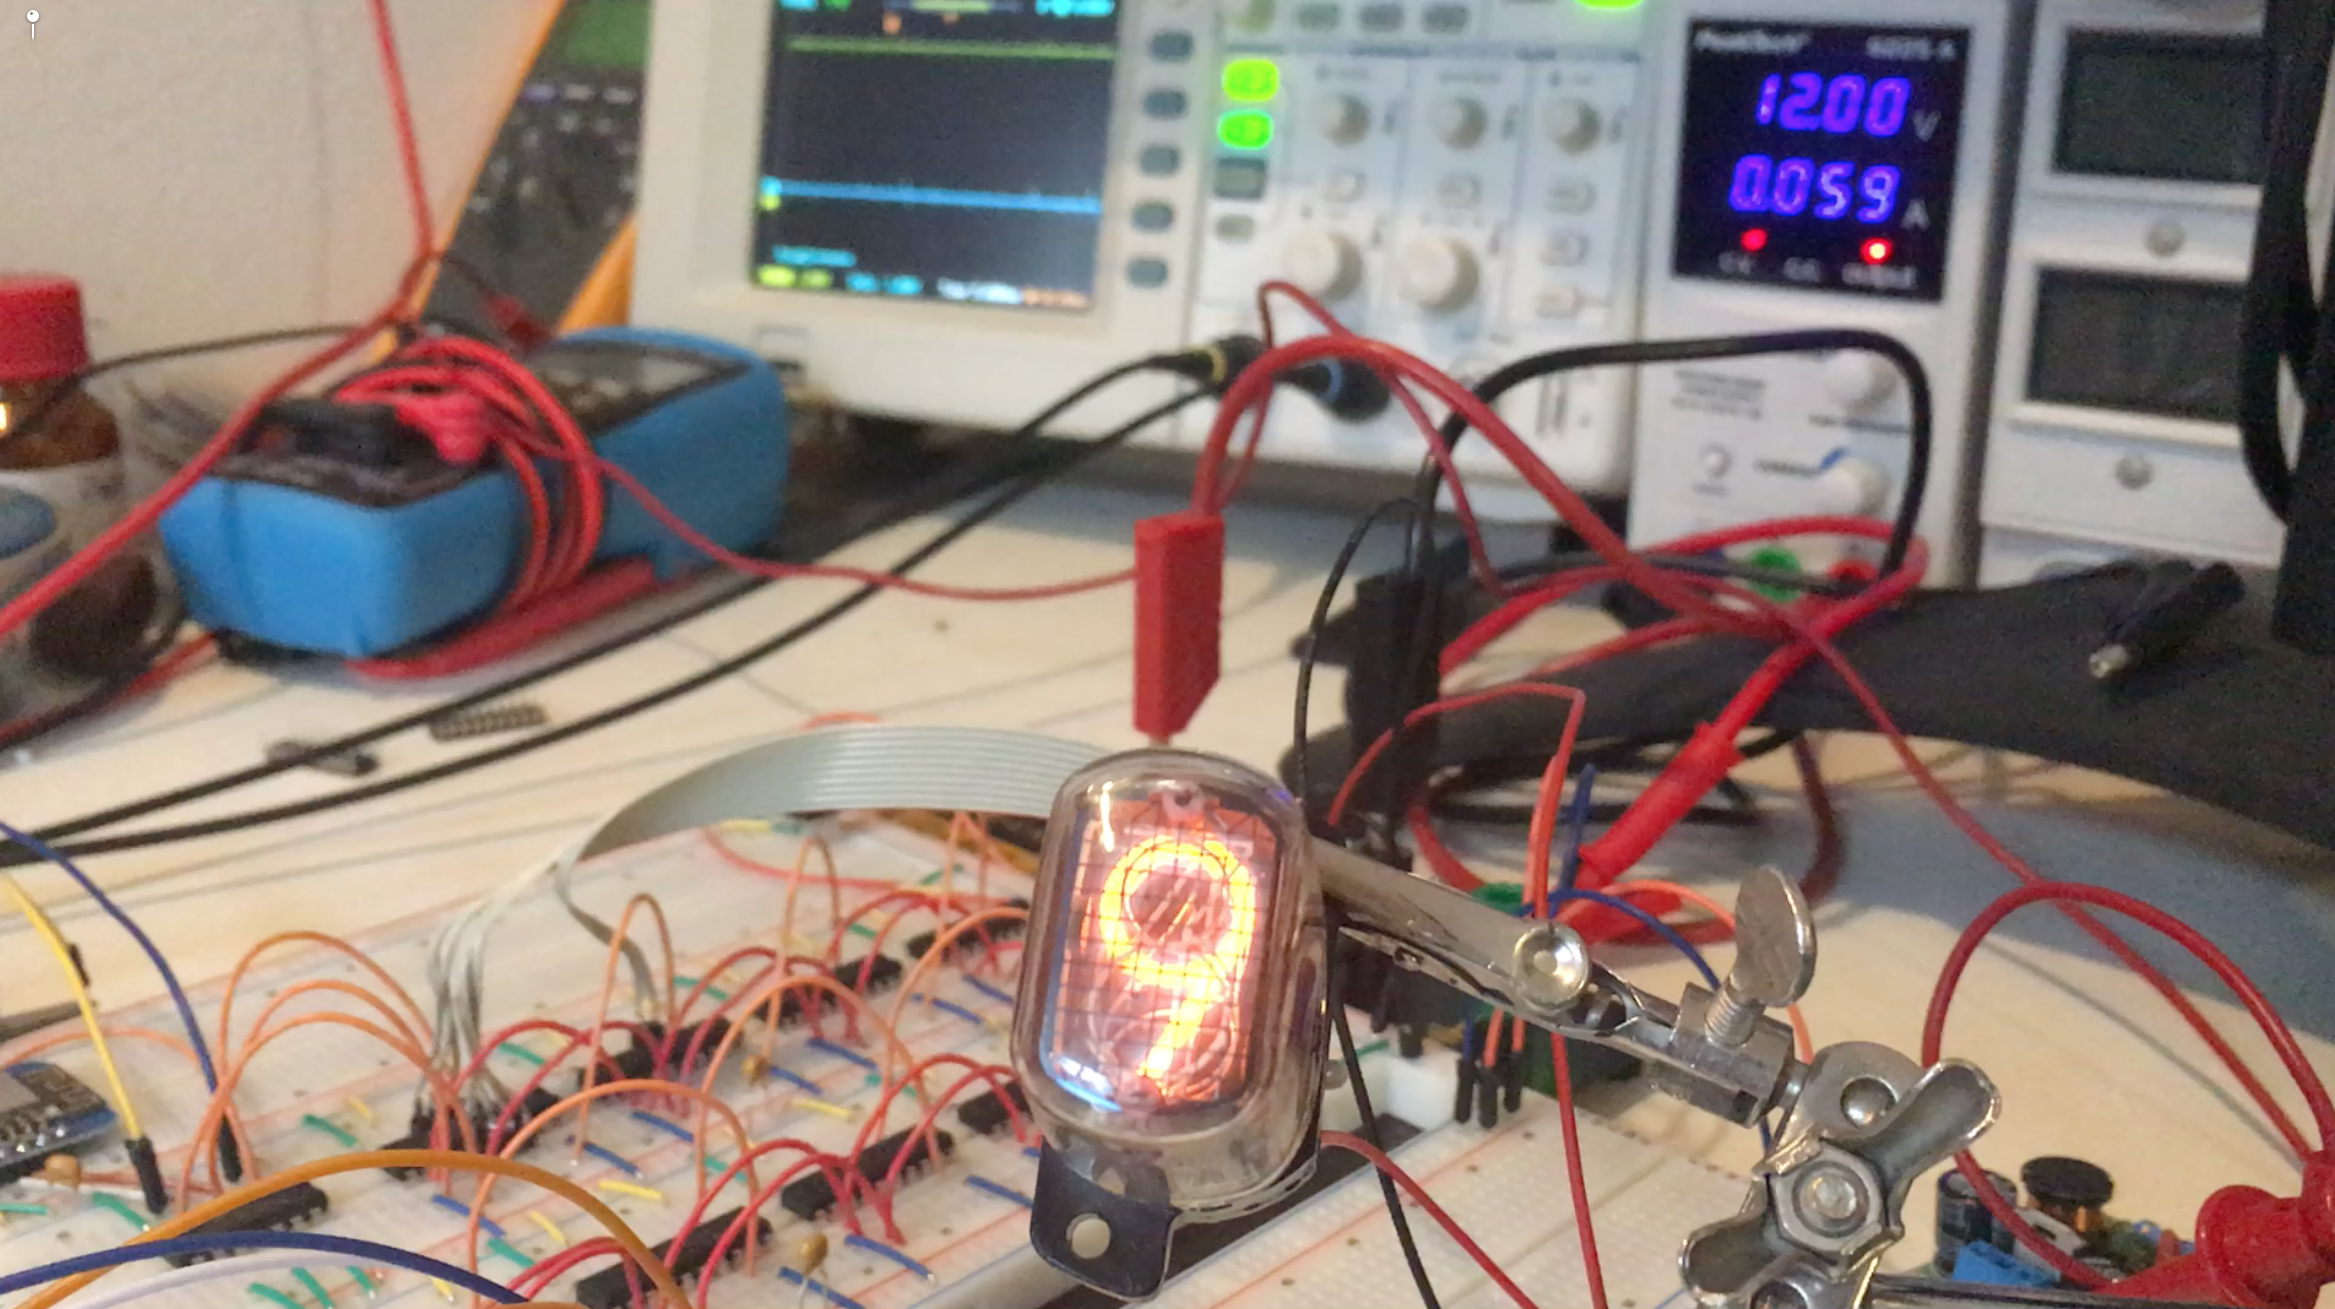 Nixie Display (4): Final Program and One Nixie